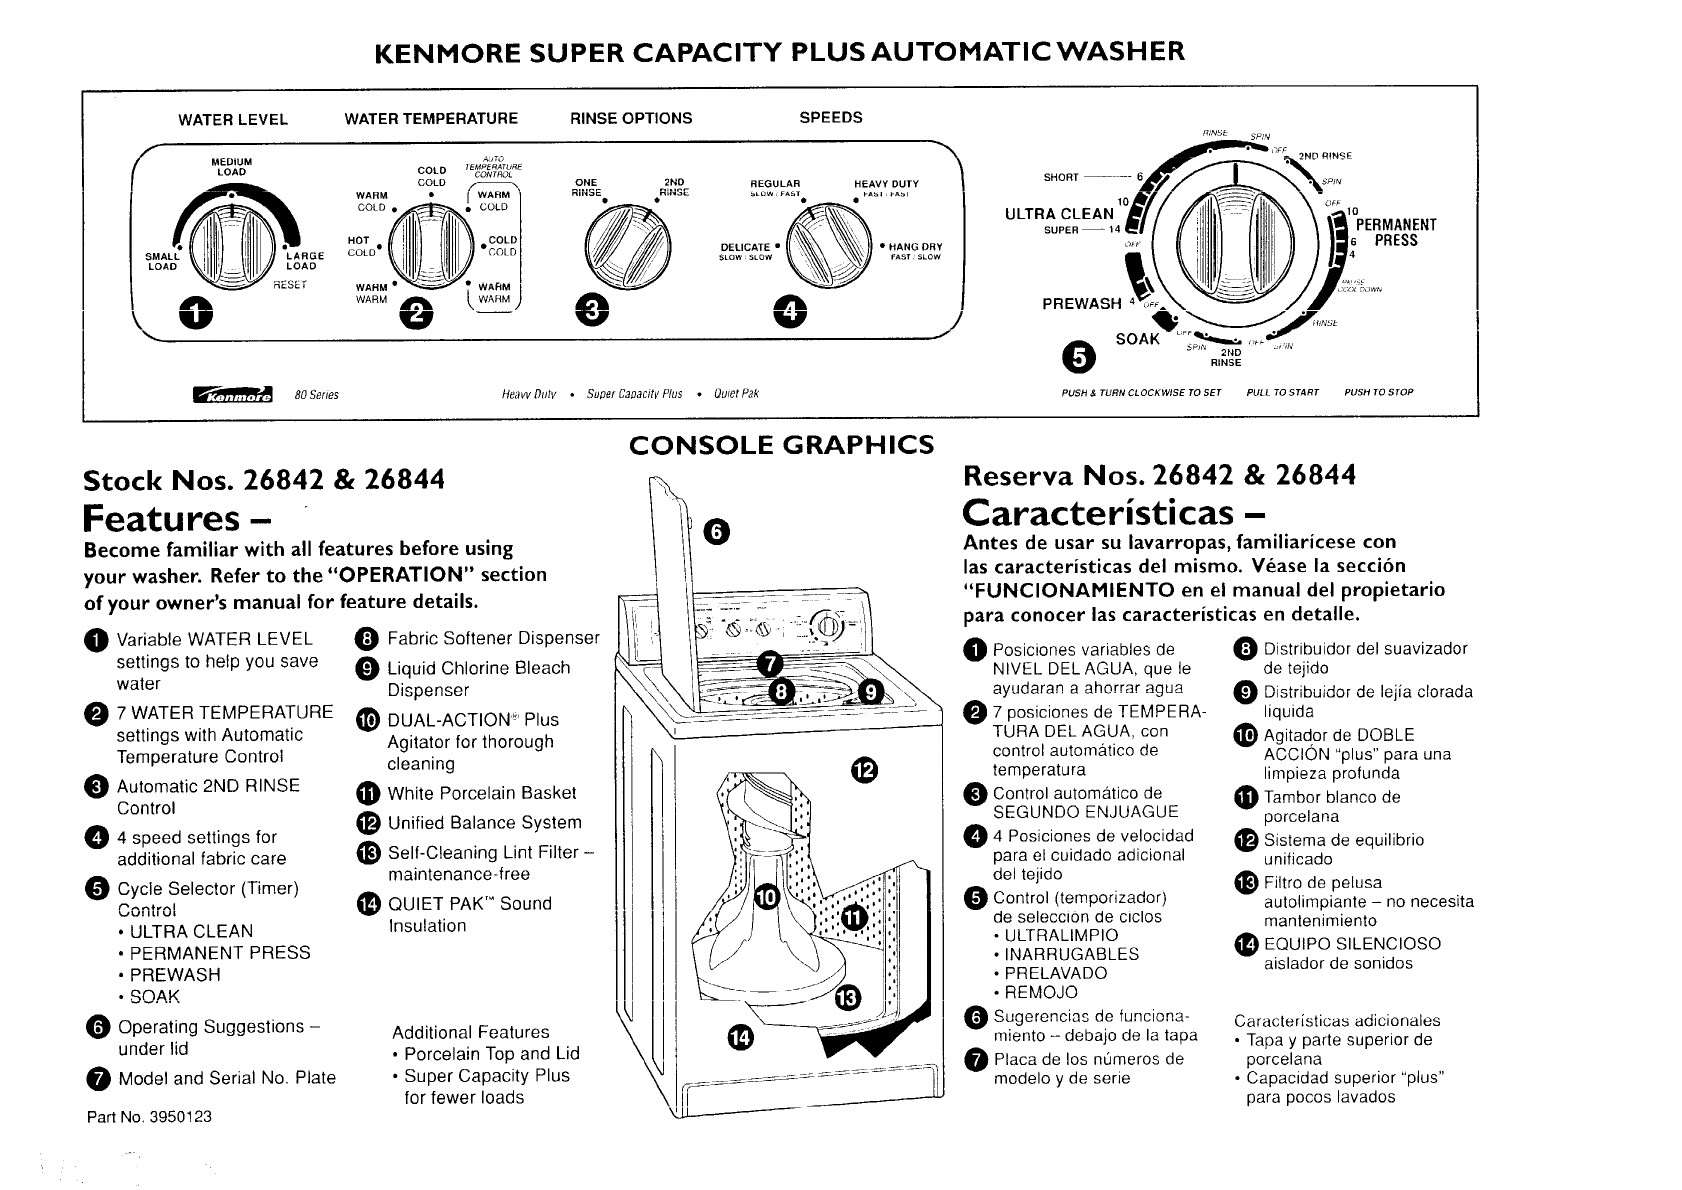 kenmore washer wiring diagram diagram collections wiring diagram with kenmore 80 series dryer parts diagram 80 series wiring diagram power wiring diagram \u2022 free wiring sears kenmore washer model 110 wiring diagram at webbmarketing.co